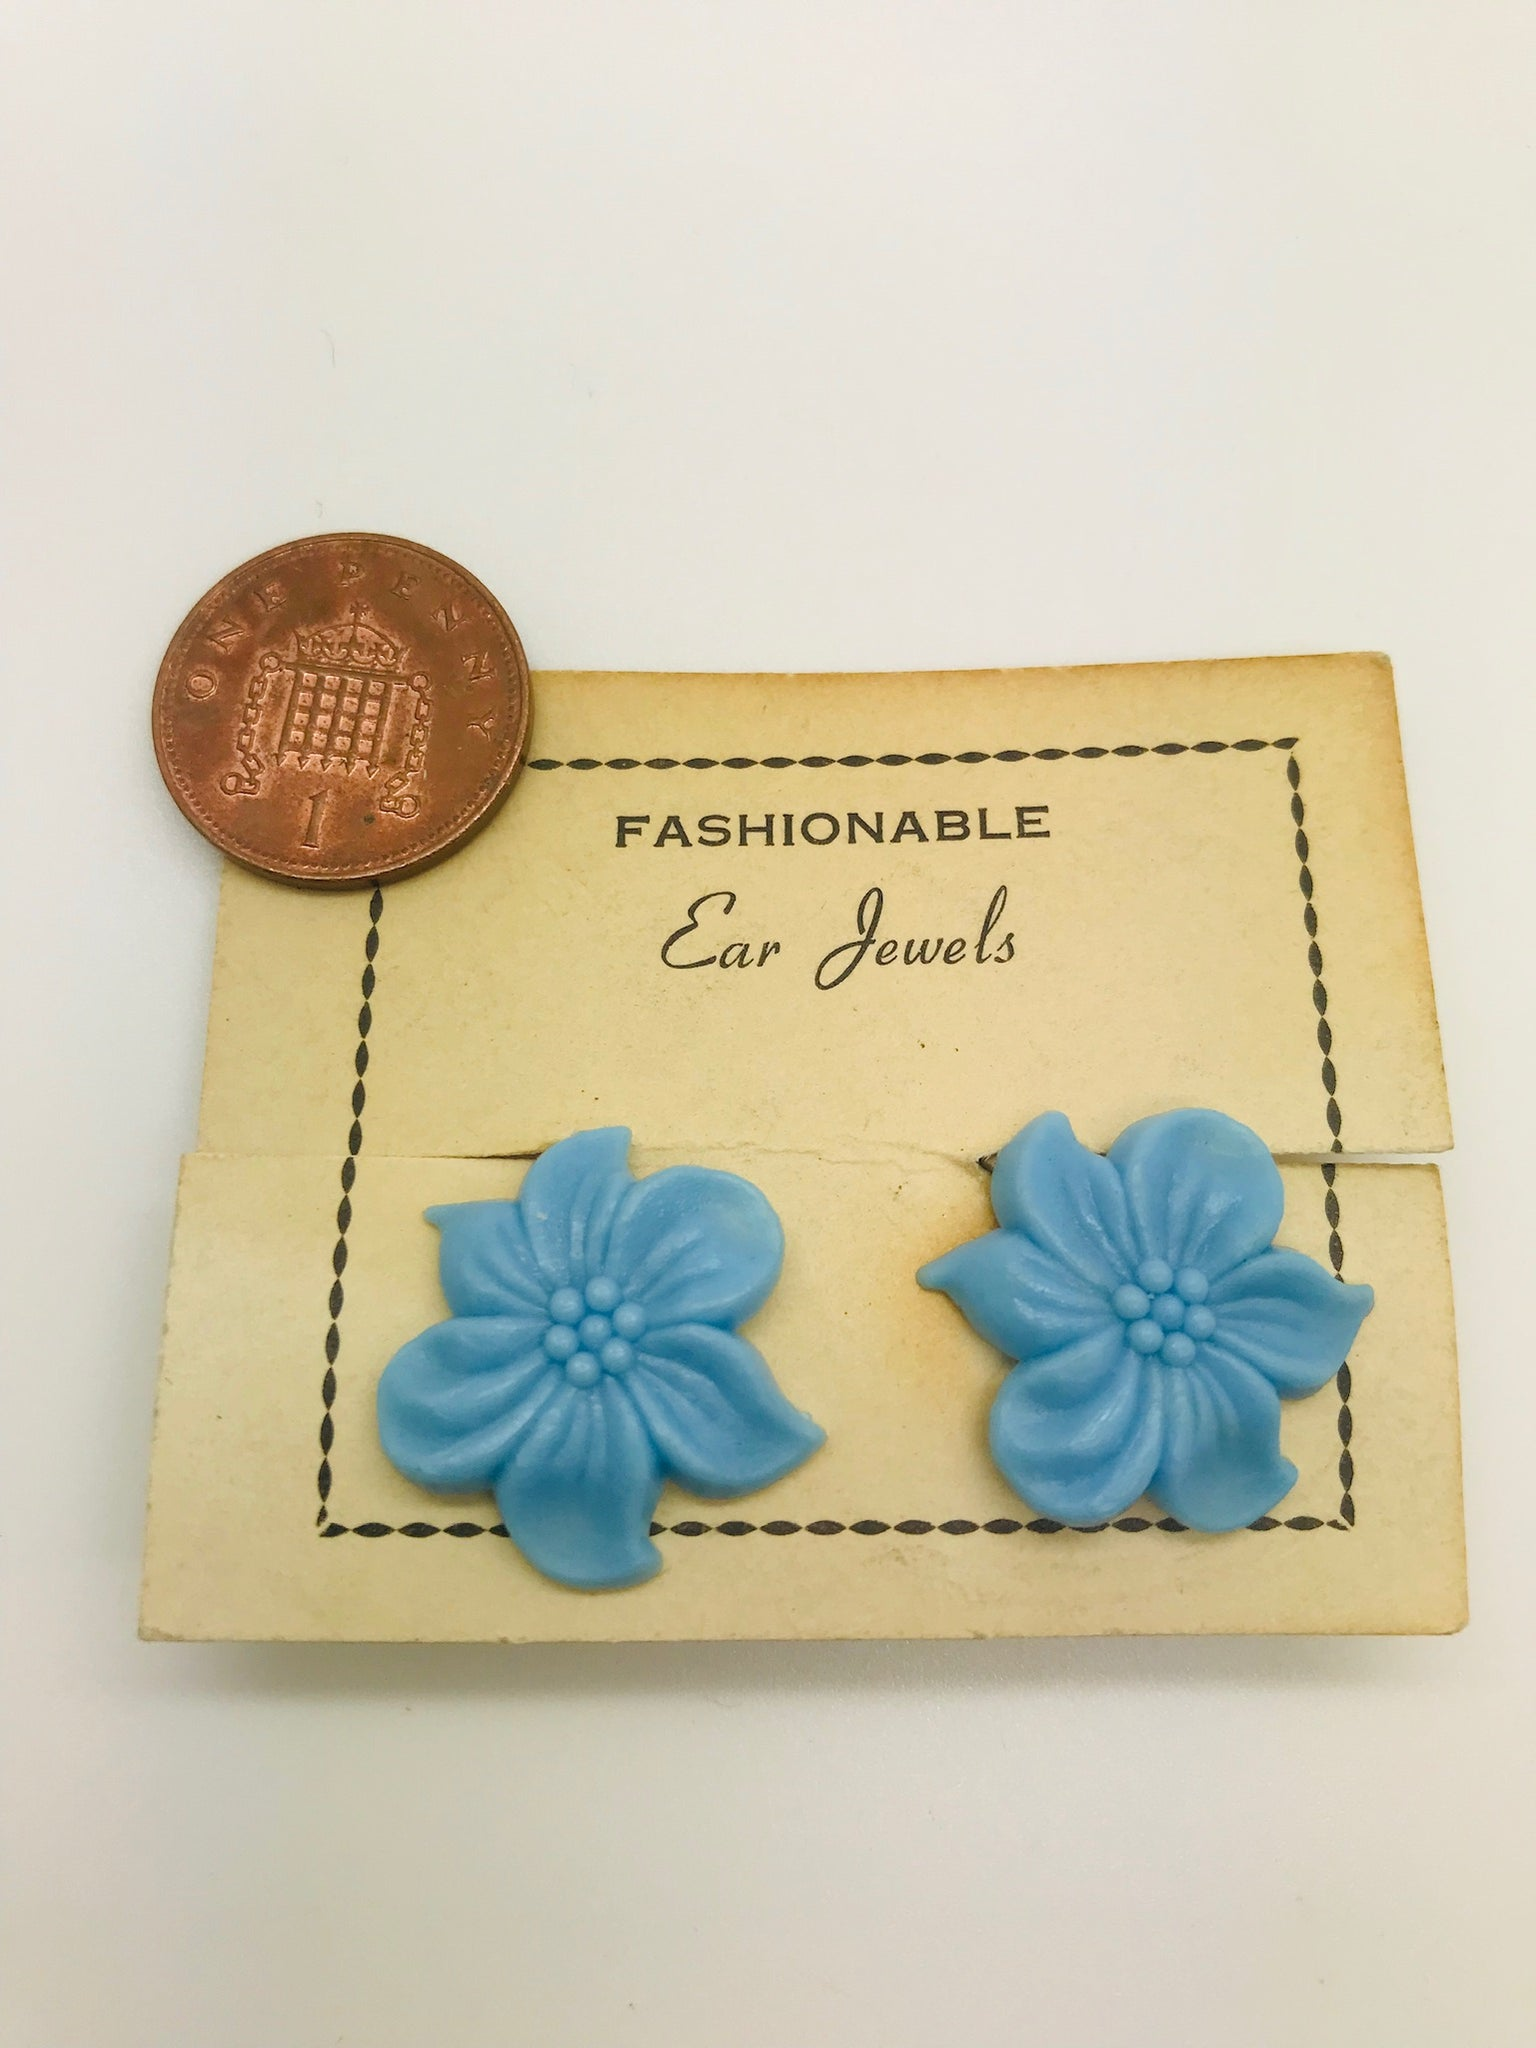 Rock n Romance Authentic Vintage 1940s-50s Screw Back Blue Flower Acrylic Resin Earrings by The Schein Brothers - RocknRomance Clothing